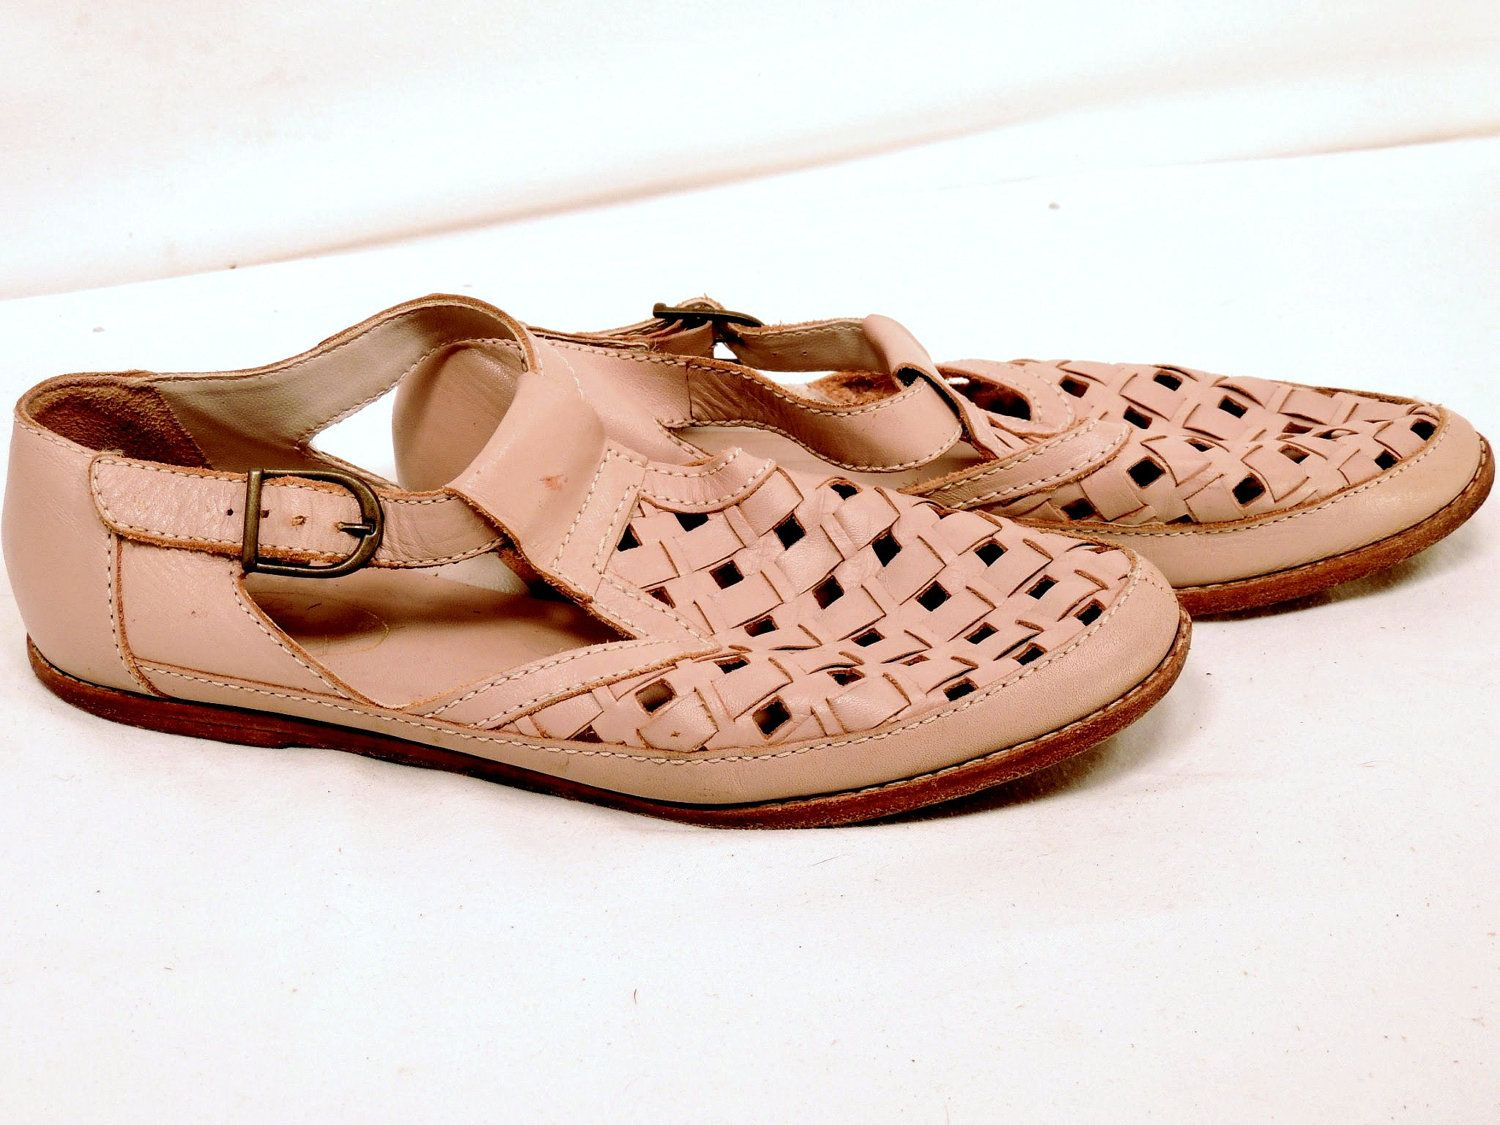 Vintage Pink Bass Woven Leather Shoes Size 8.5. $38.00, via Etsy.